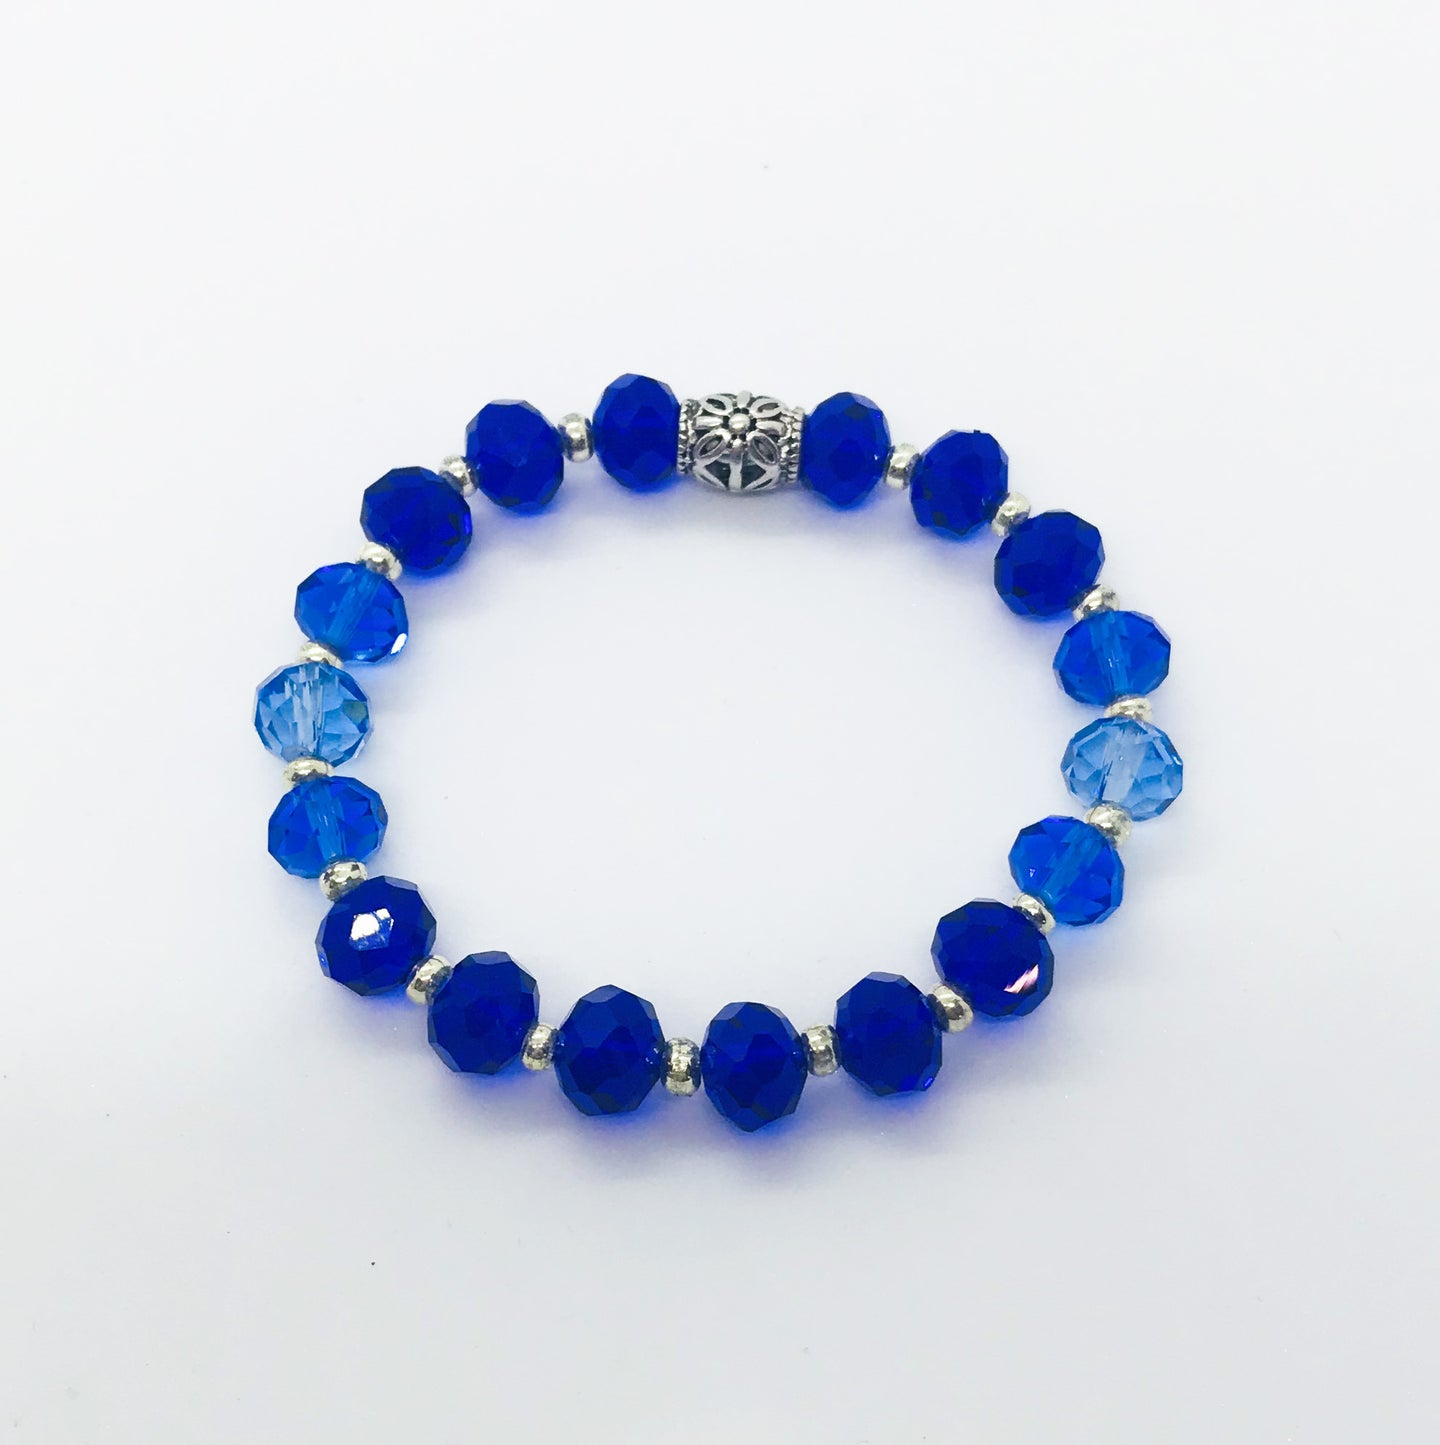 Glass Bead Stretchy Bracelet - B851